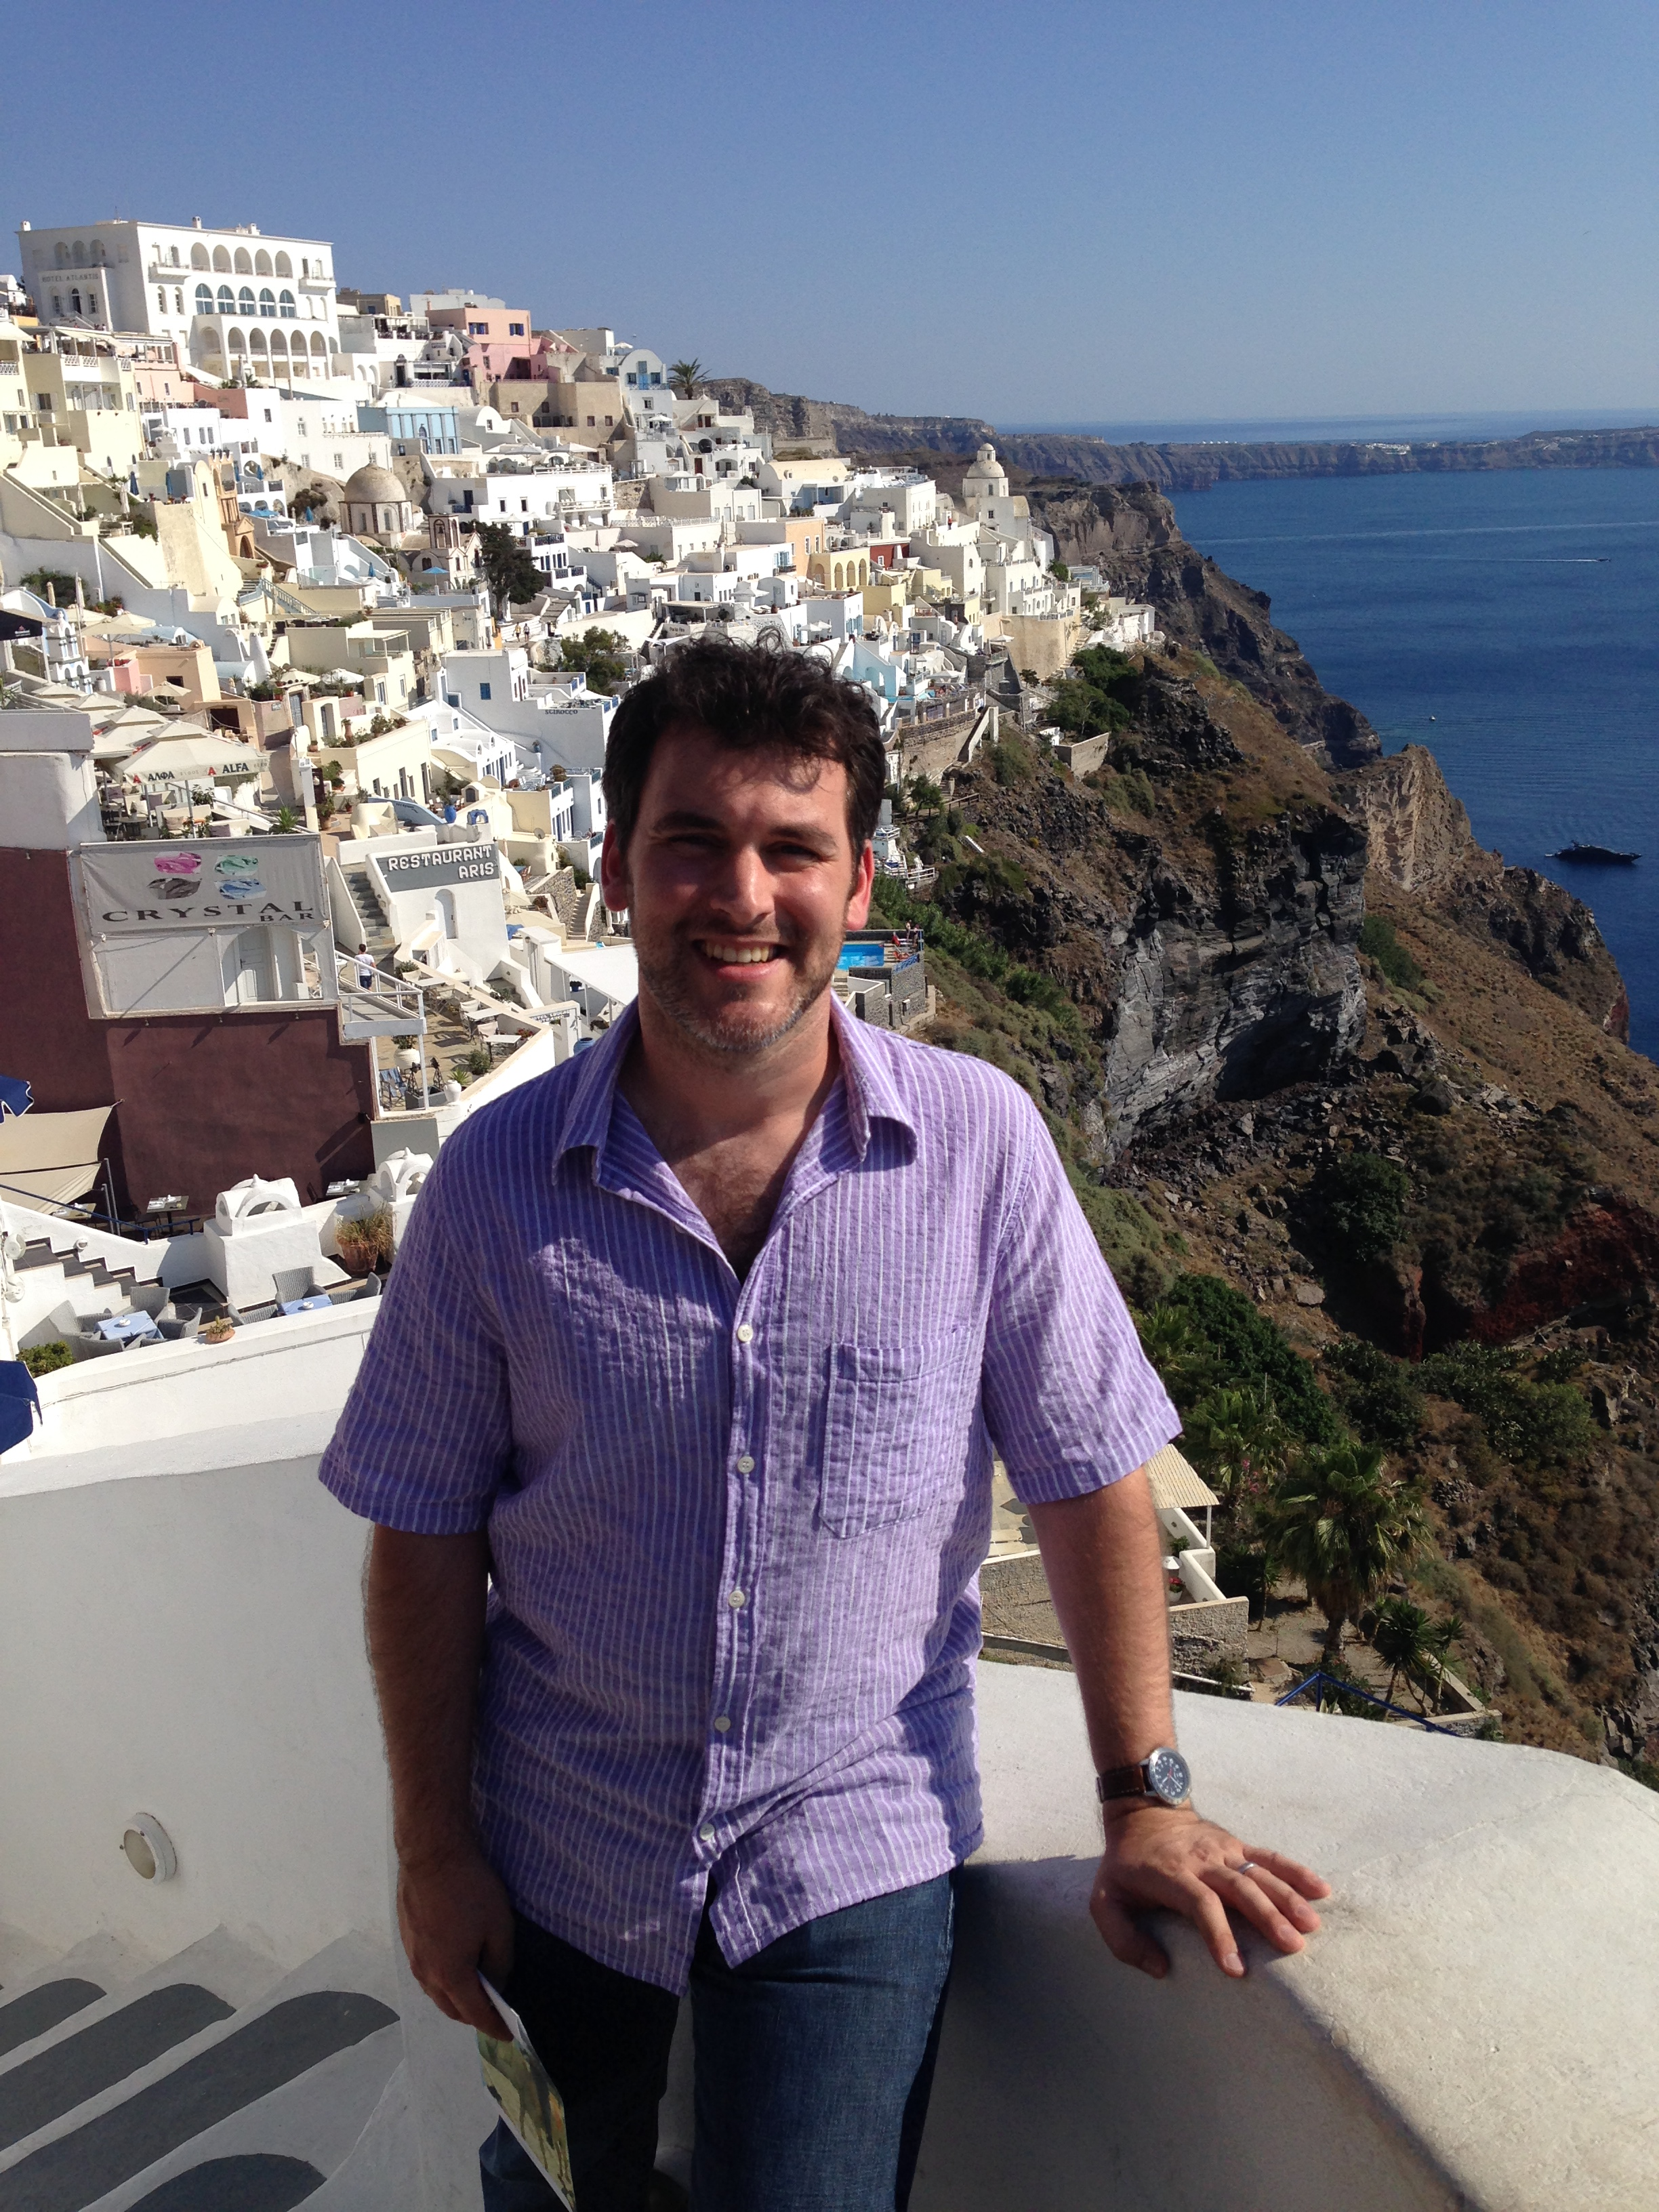 david sparks jr. enjoys the view in santorini